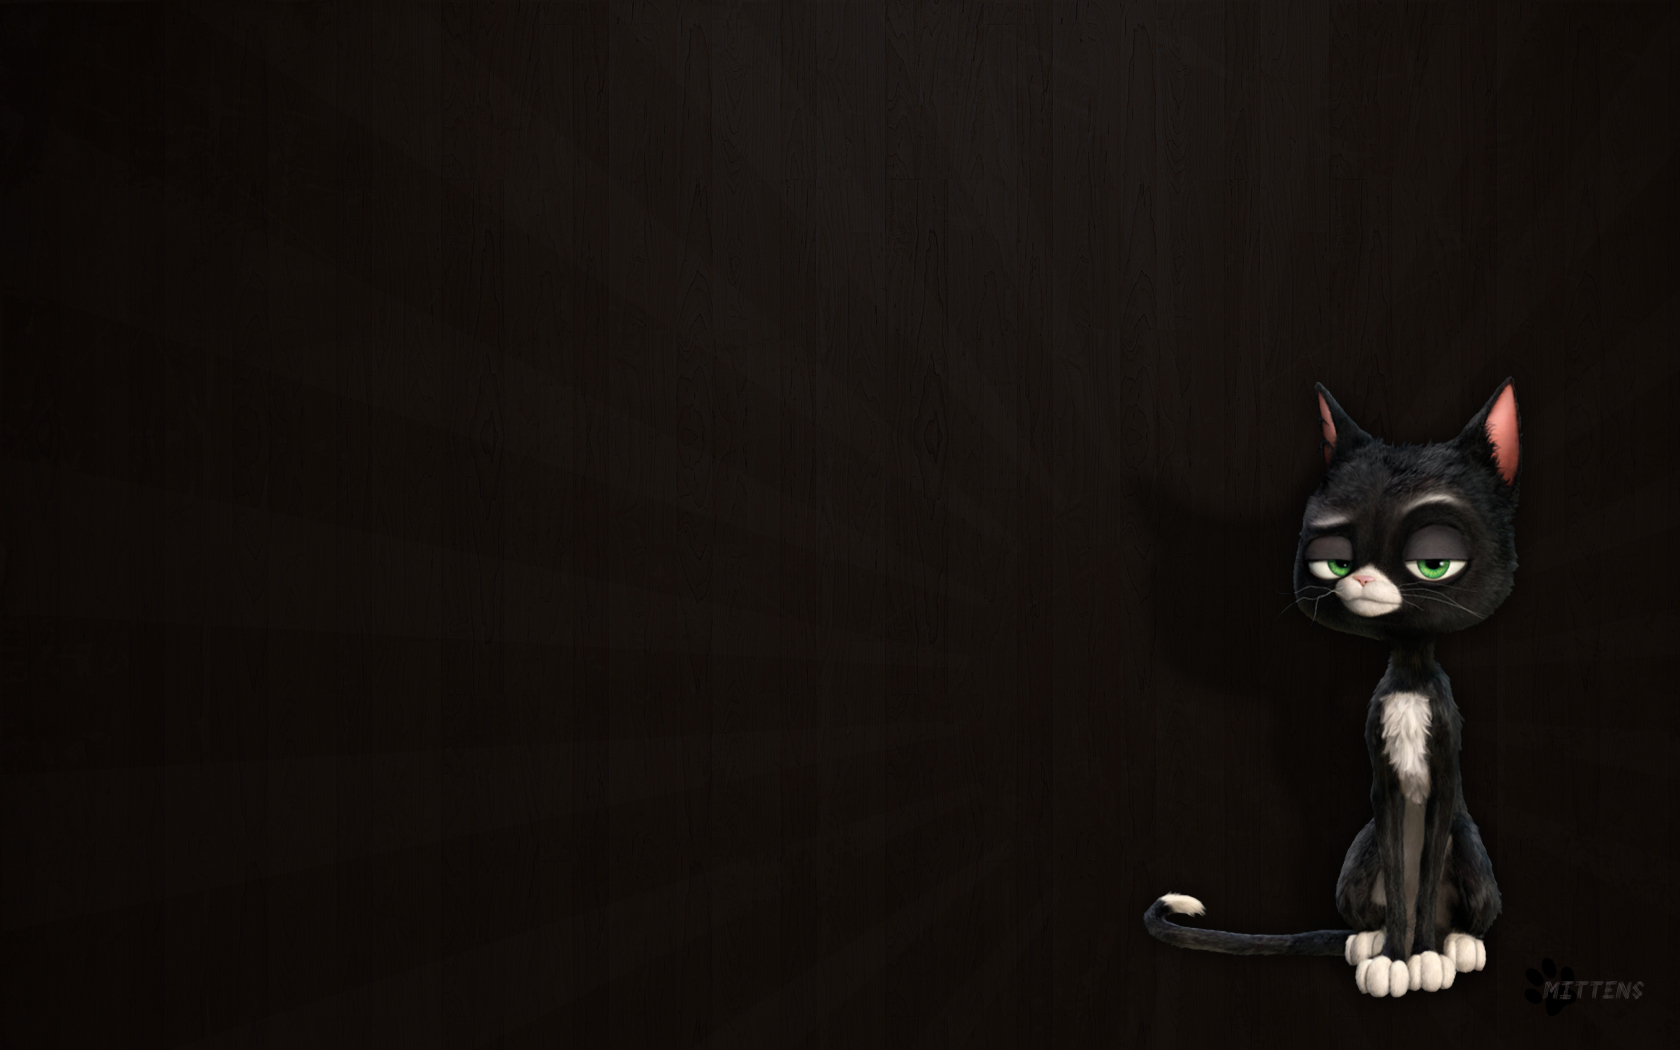 Mittens Wallpaper by King Billy on deviantART 1680x1050